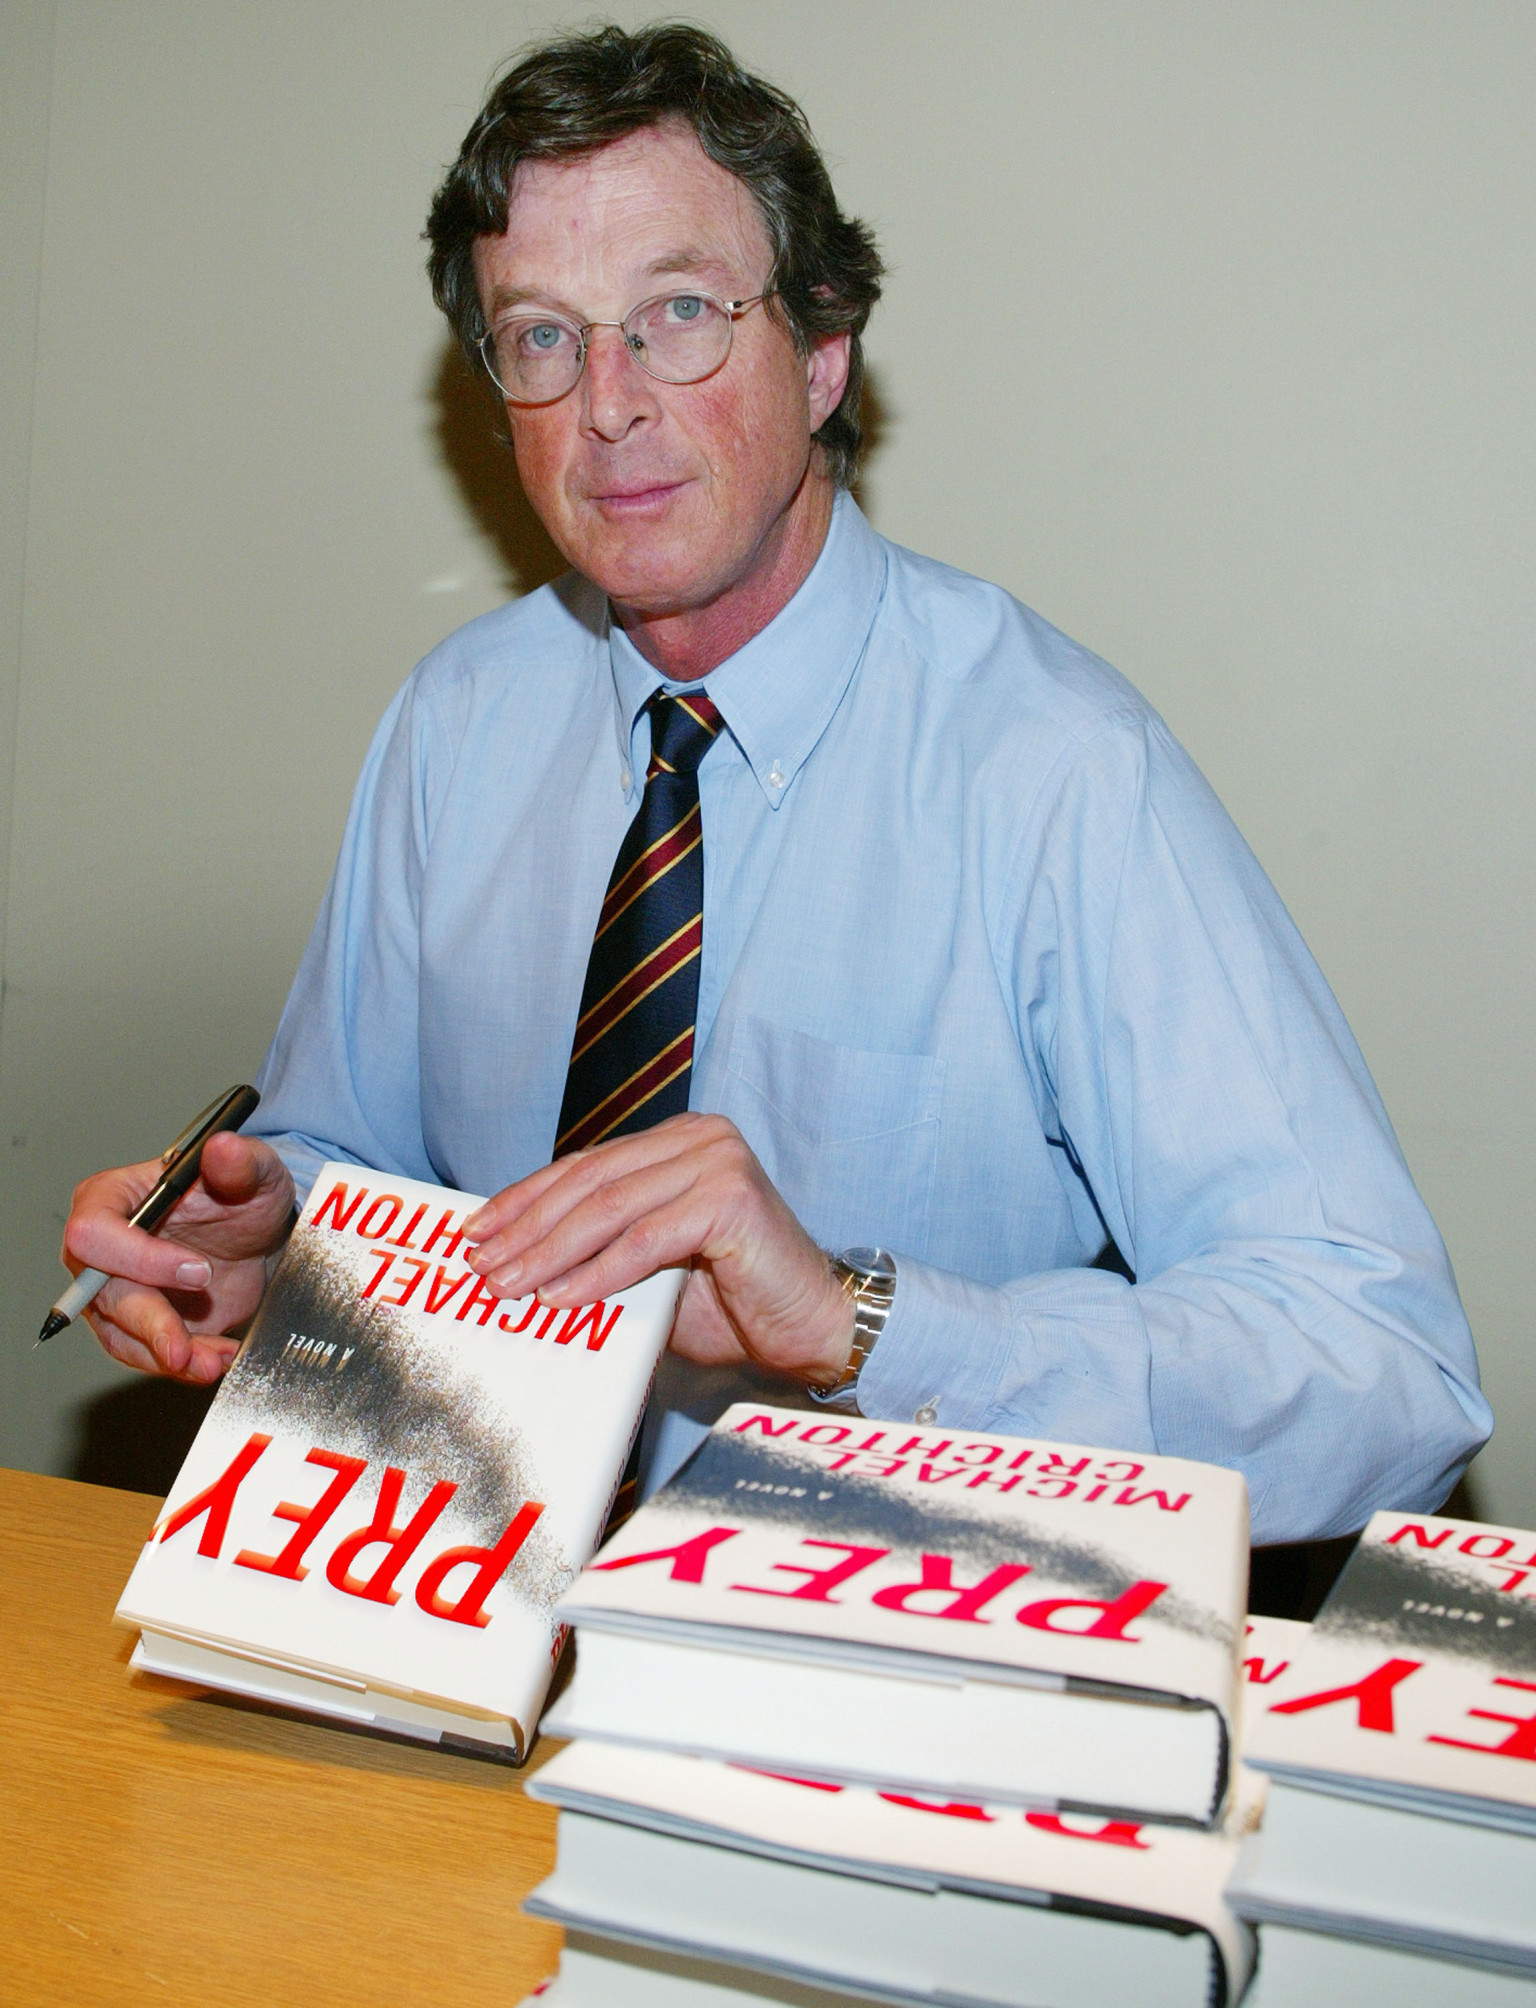 a biography of michael crichton Michael crichton was born in chicago, illinois, but grew up in roslyn, new york his father was a journalist and encouraged him to write and to type michael gave up studying english at harvard university, having become disillusioned with the teaching standards--the final straw came when he submitted an essay by.